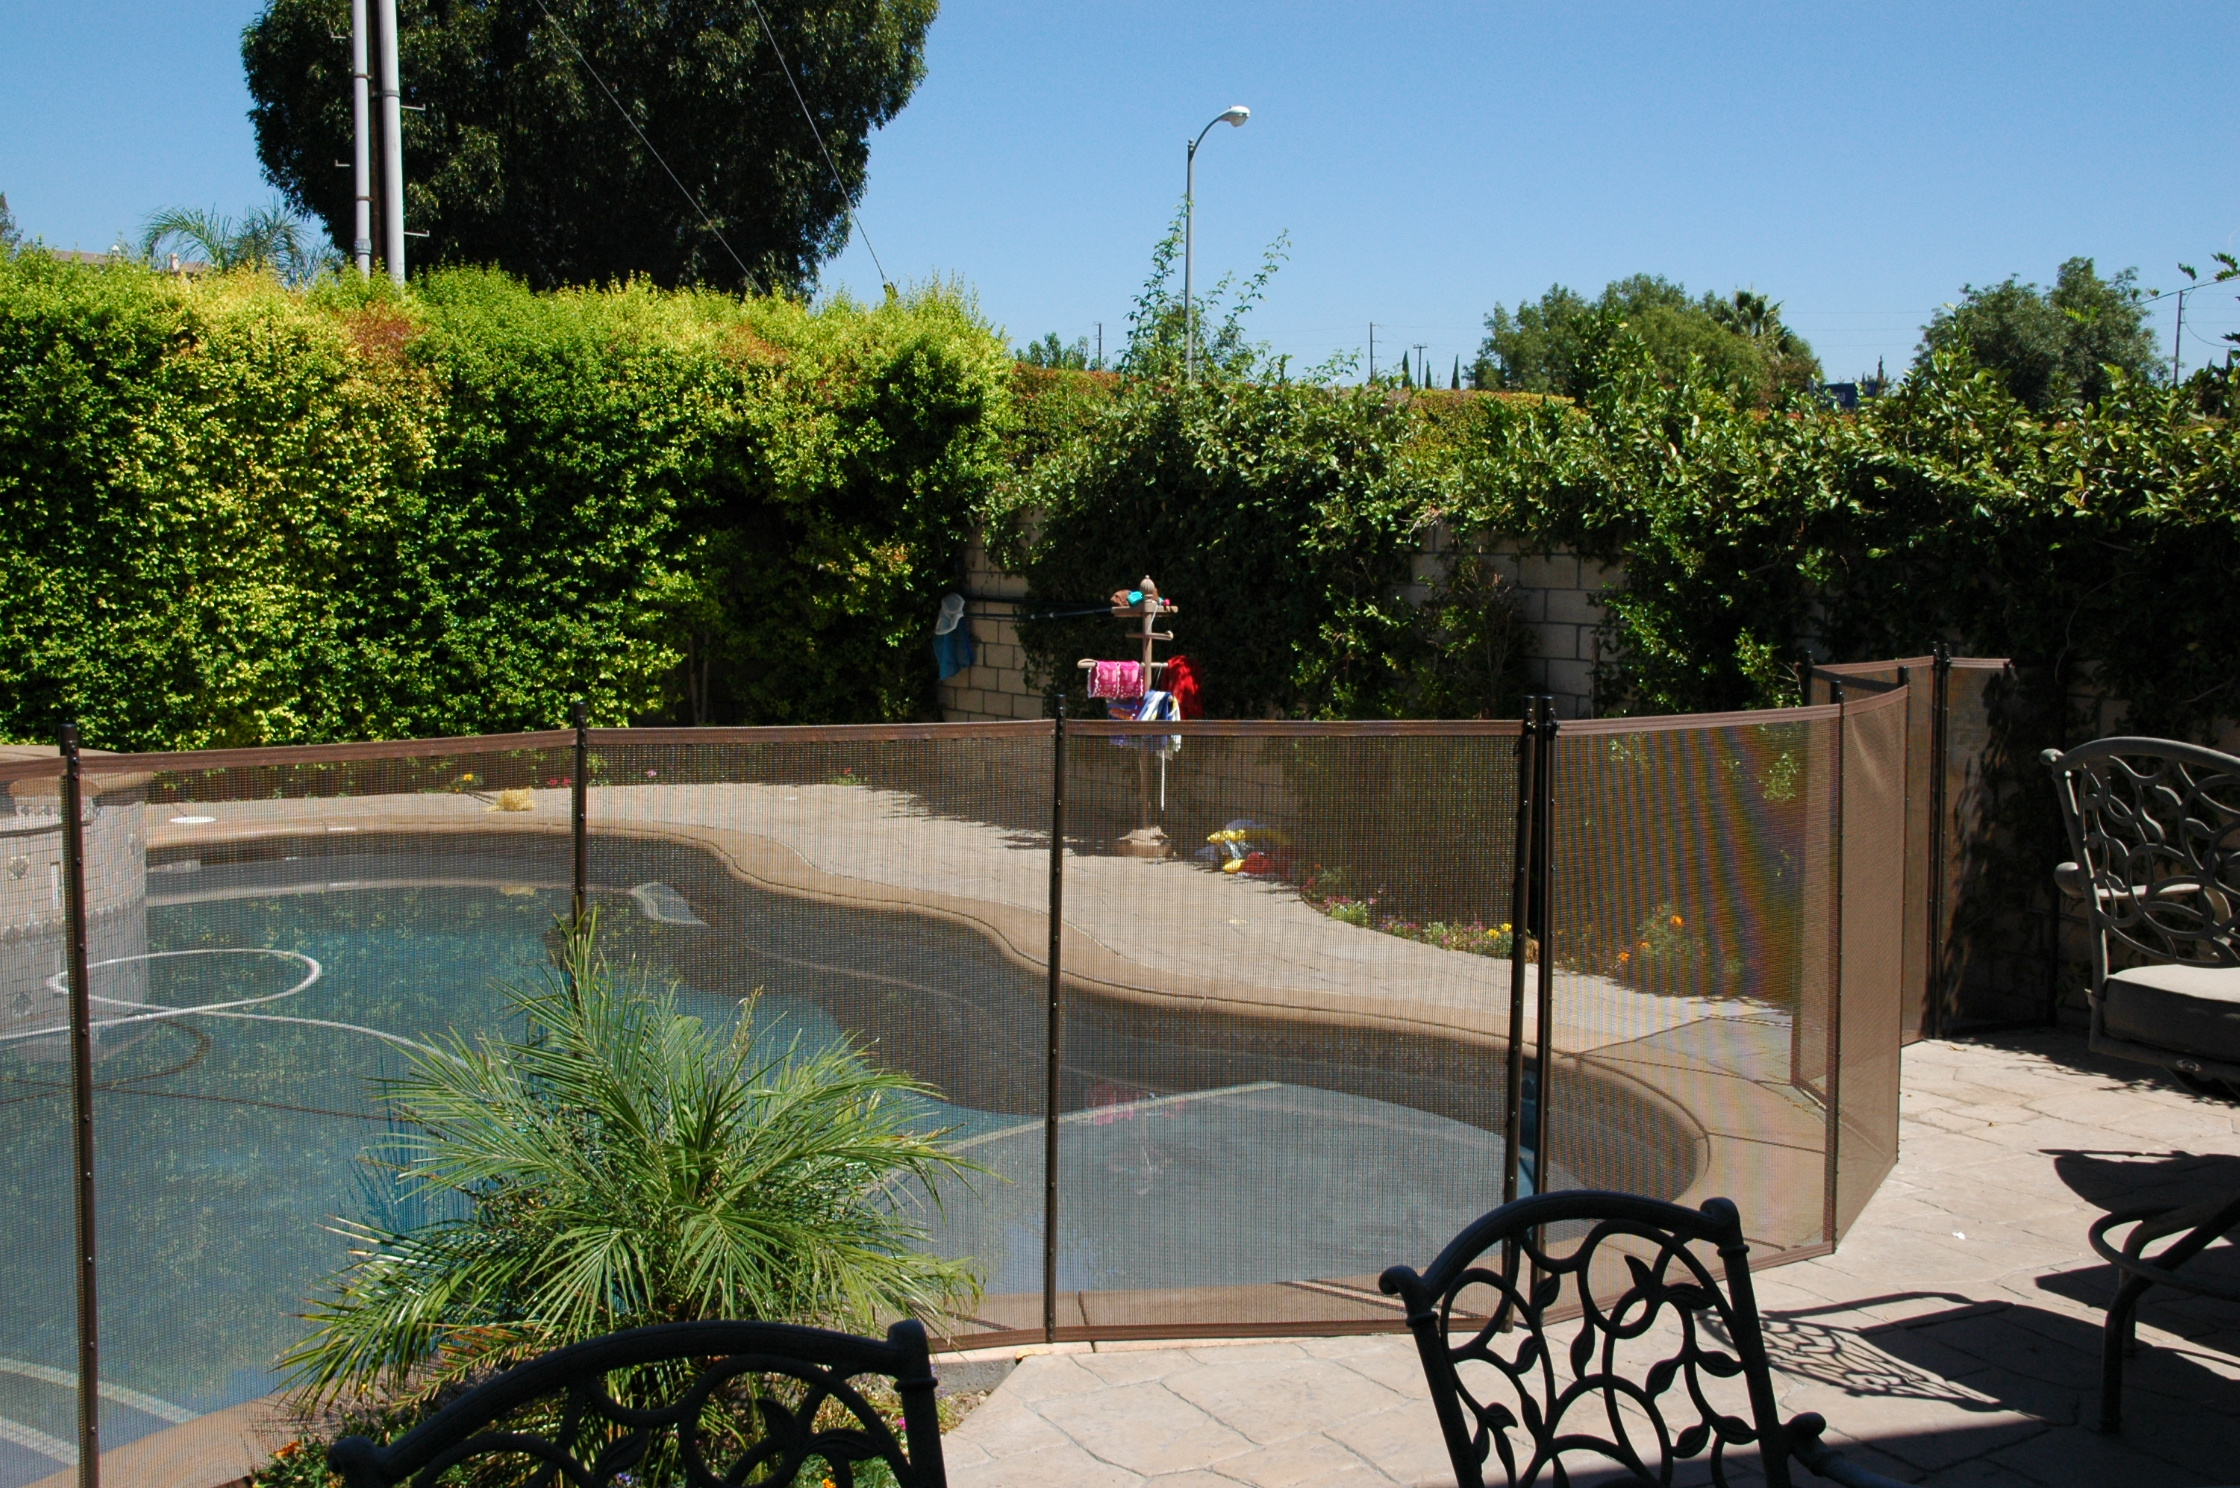 Mesh Fencing For Pool a Pool Child Safety Fence